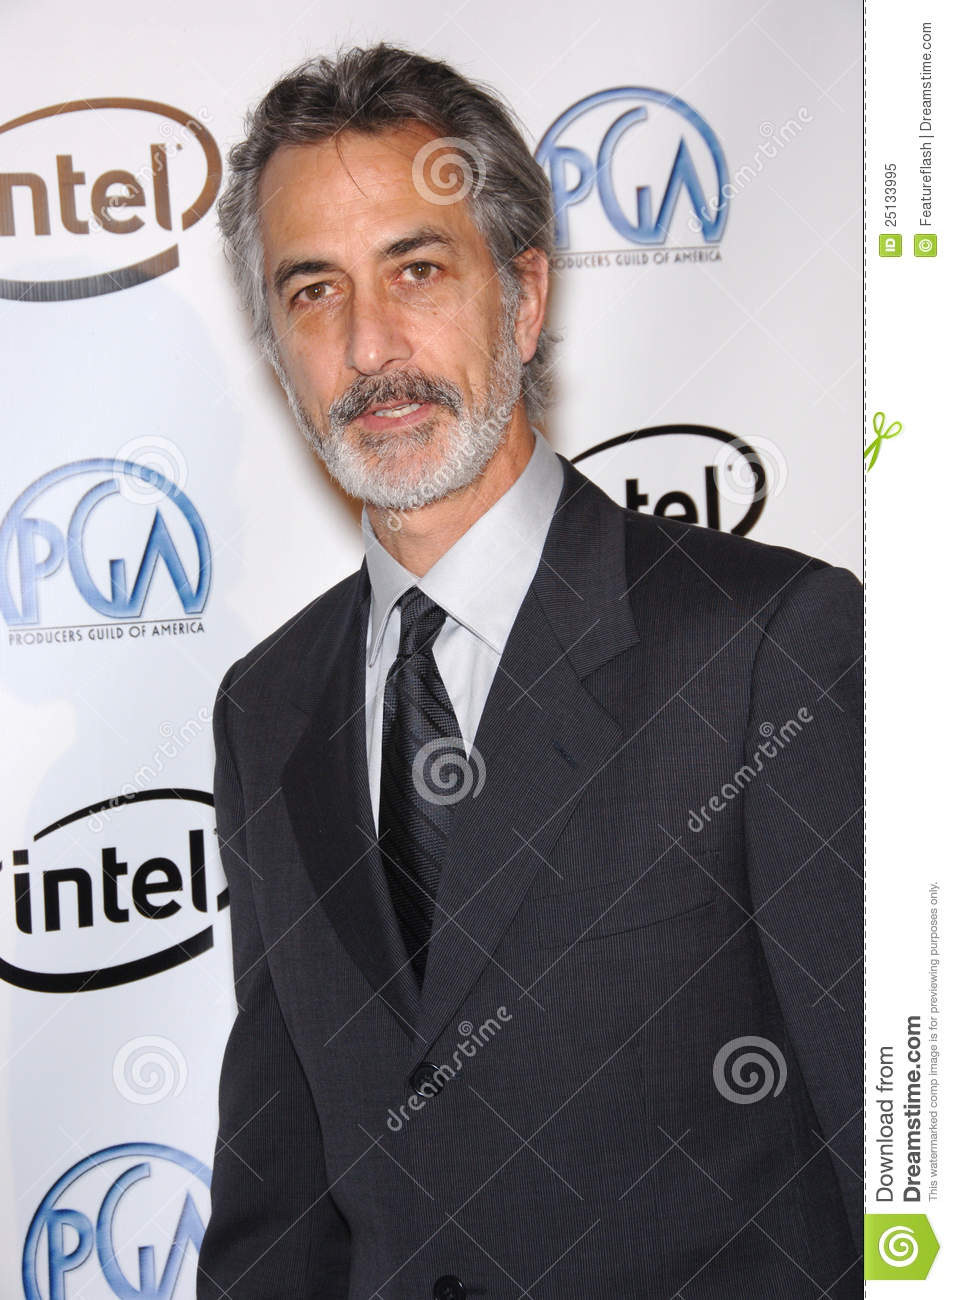 david strathairn movies listdavid strathairn young, david strathairn logan goodman, david strathairn imdb, david strathairn actor, david strathairn height, david strathairn lincoln, david strathairn wife, david strathairn net worth, david strathairn movies, david strathairn blacklist, david strathairn movies list, david strathairn house, david strathairn filmography, david strathairn interview, david strathairn shirtless, david strathairn married, david strathairn godzilla, david strathairn family